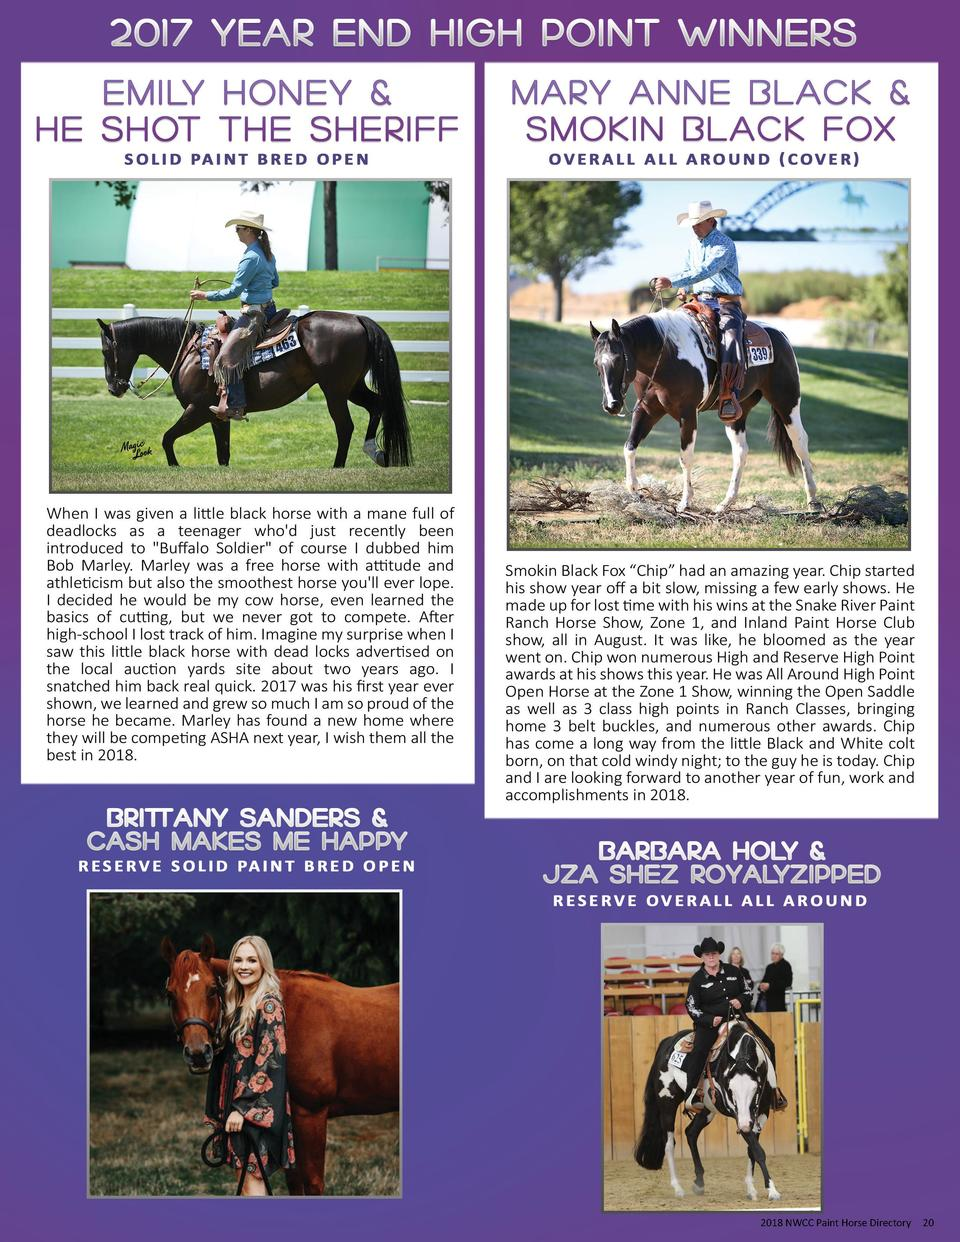 2018 NWCC Paint Horse Directory  20